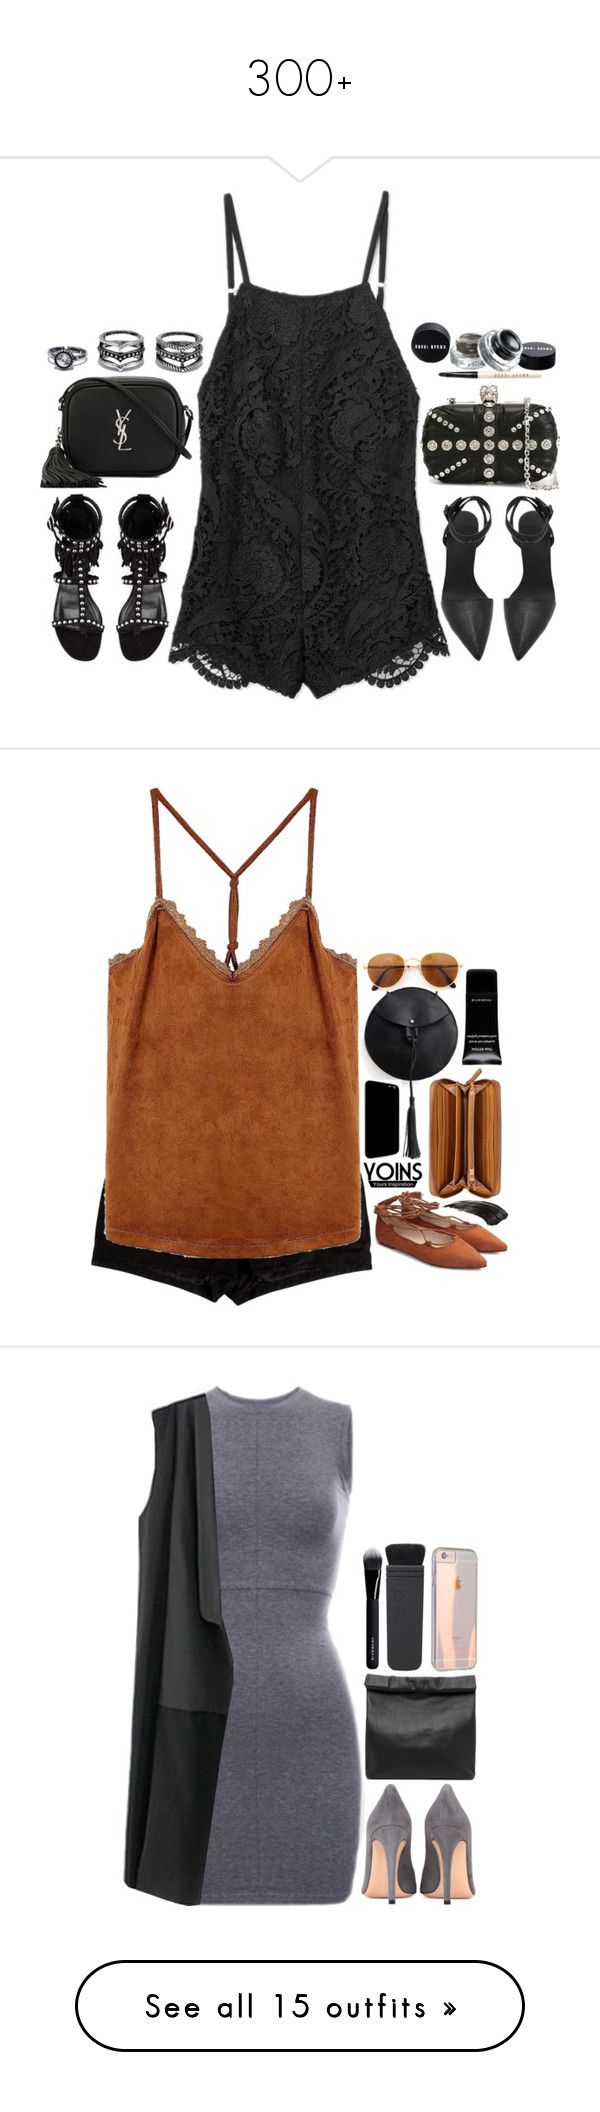 """300+"" by emilypondng ❤ liked on Polyvore featuring Stone_Cold_Fox, Yves Saint Laurent, LULUS, Alexander Wang, Alexander McQueen, DayToNight, romper, L'Agence, Nine West and Gianfranco Ferré"